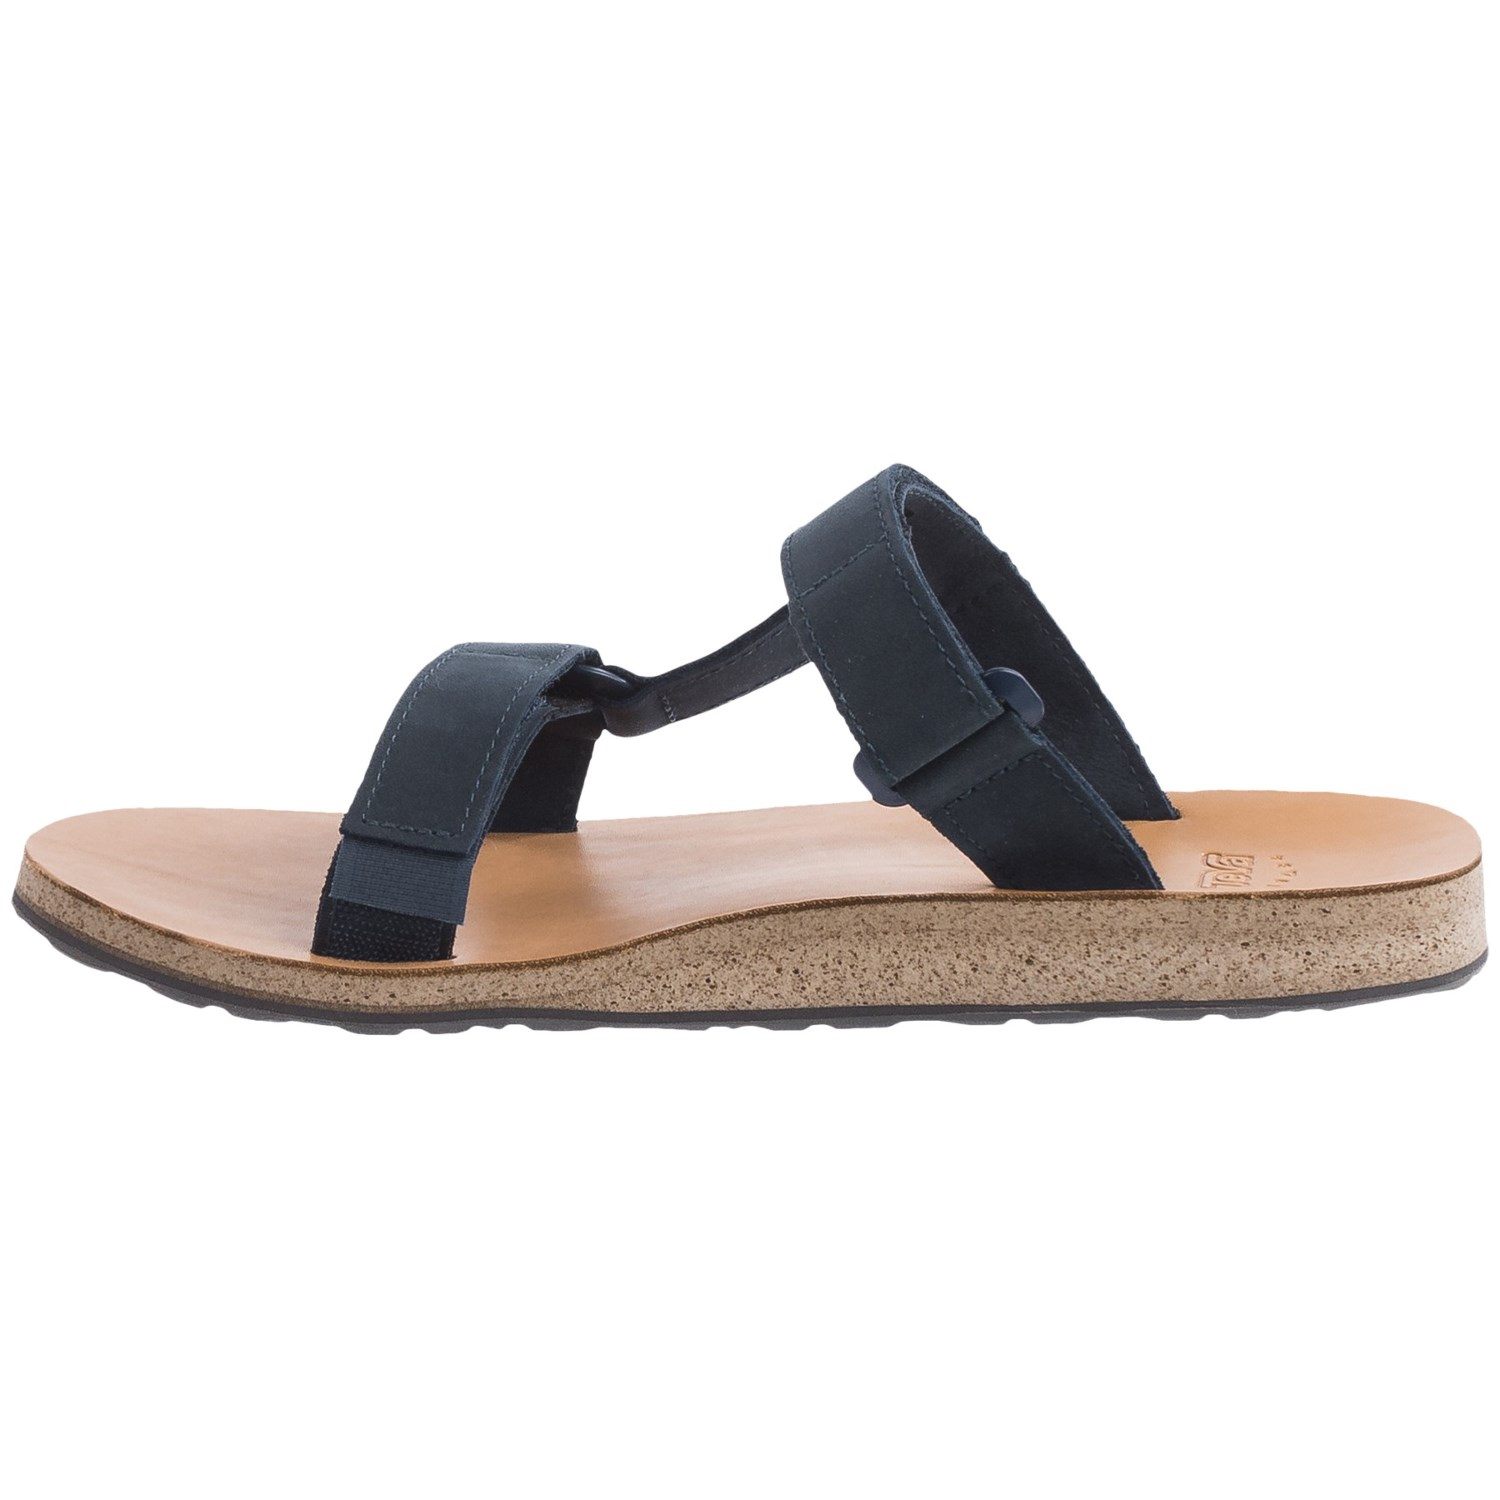 aed93f99c4db1e Teva Universal Slide Sandals (For Men) - Save 68%